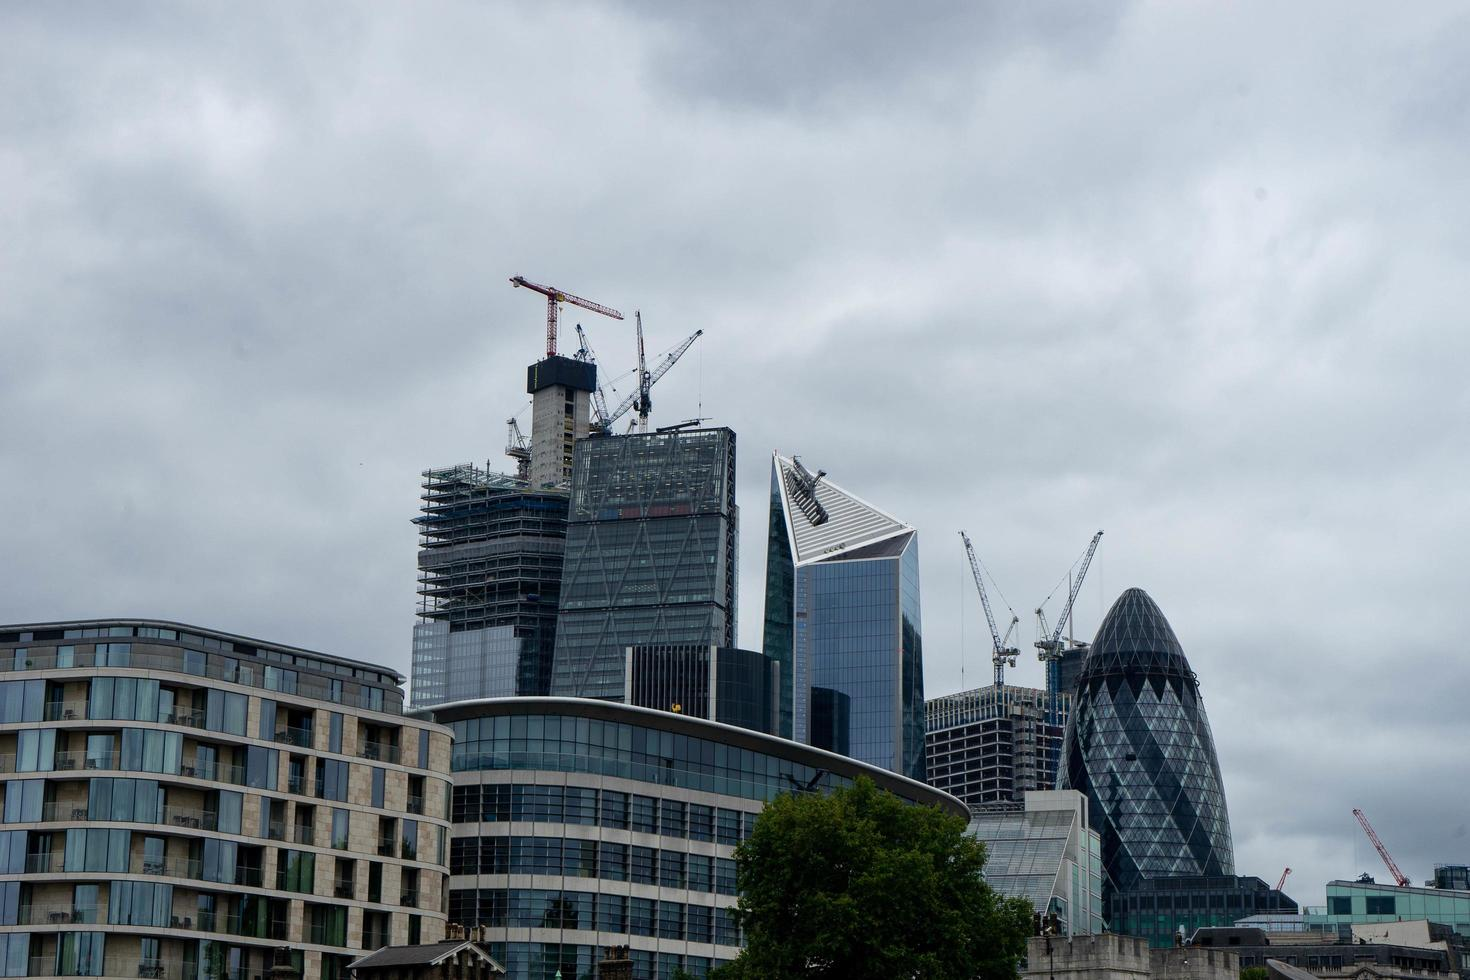 London, England, 2020 - Construction on buildings in the city photo